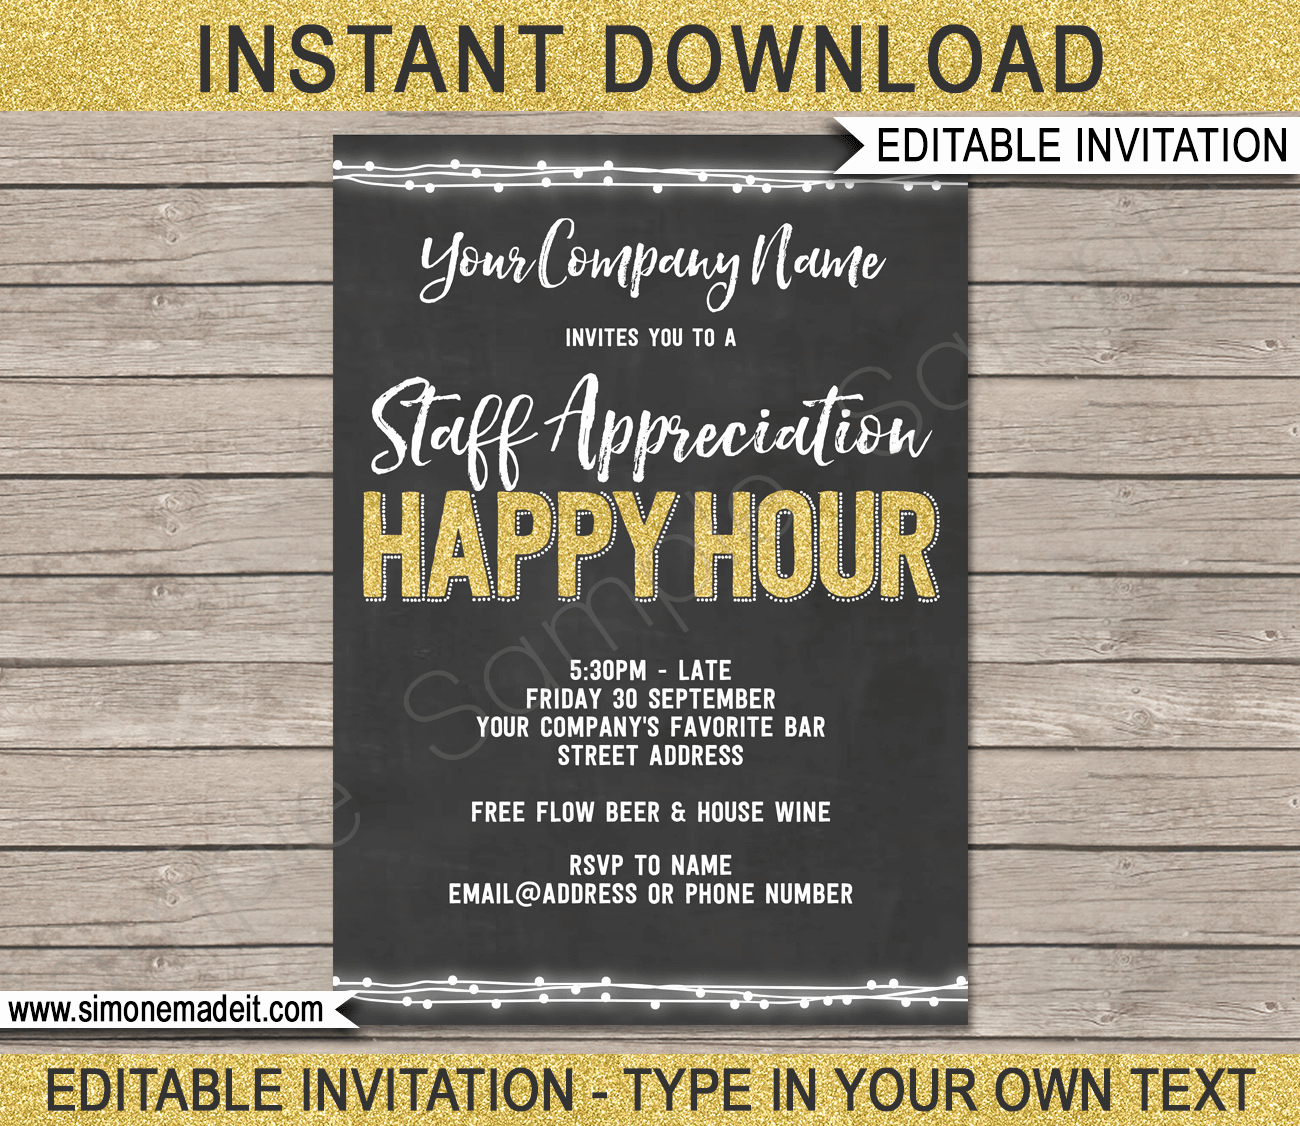 Happy Hour Invite Template Awesome Chalkboard Happy Hour Invite Template